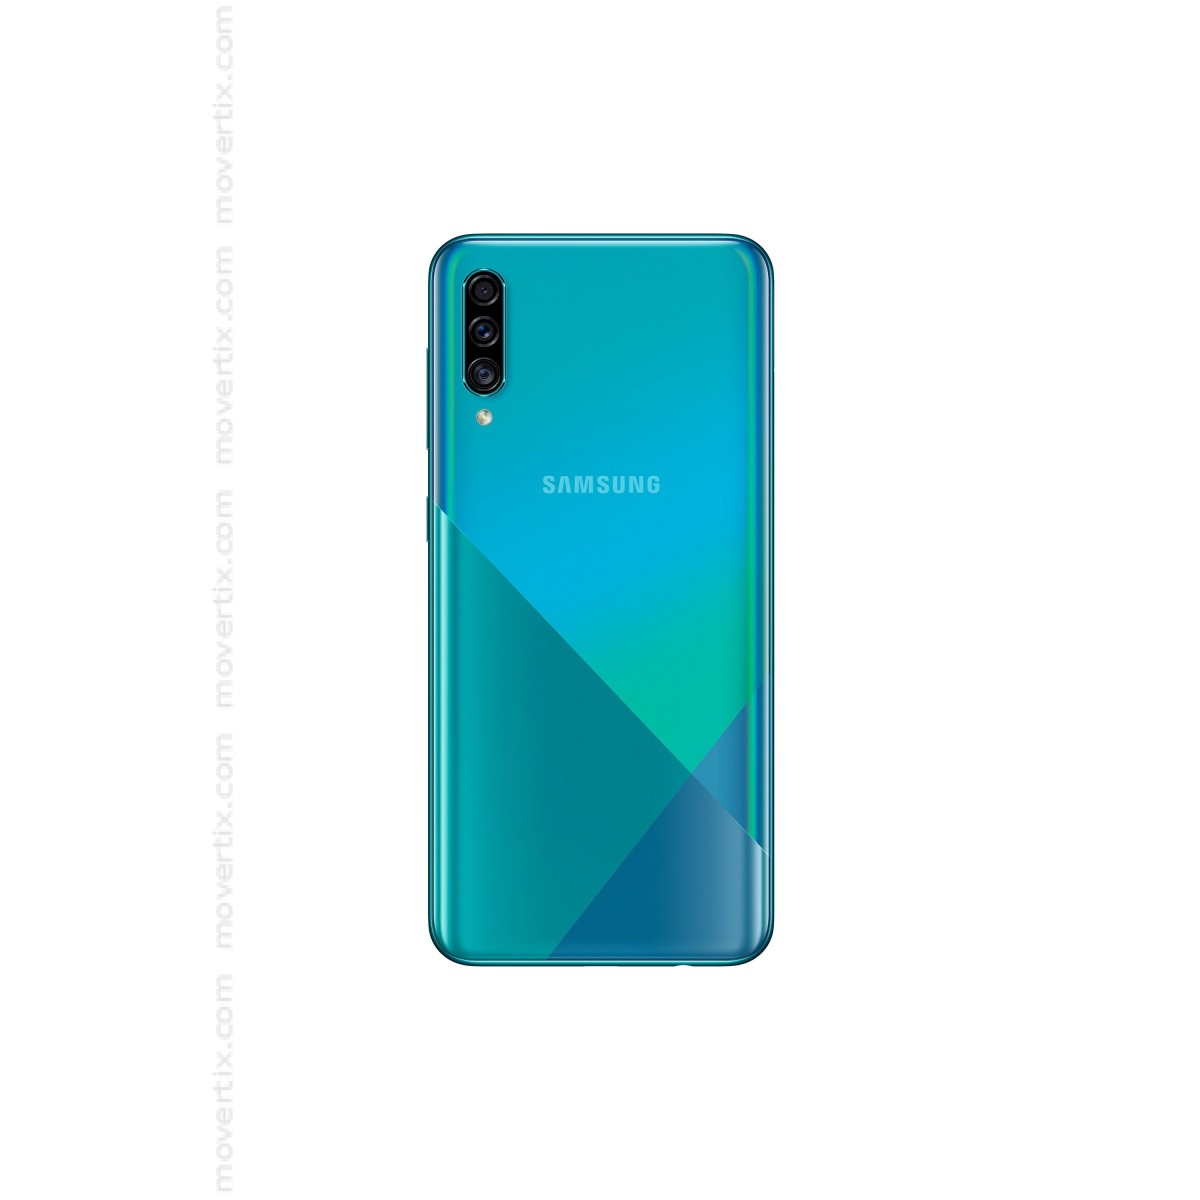 Samsung Galaxy A30s Dual Sim Prism Green 64gb And 4gb Ram Sm A307f Ds 8806090158315 Movertix Mobile Phones Shop